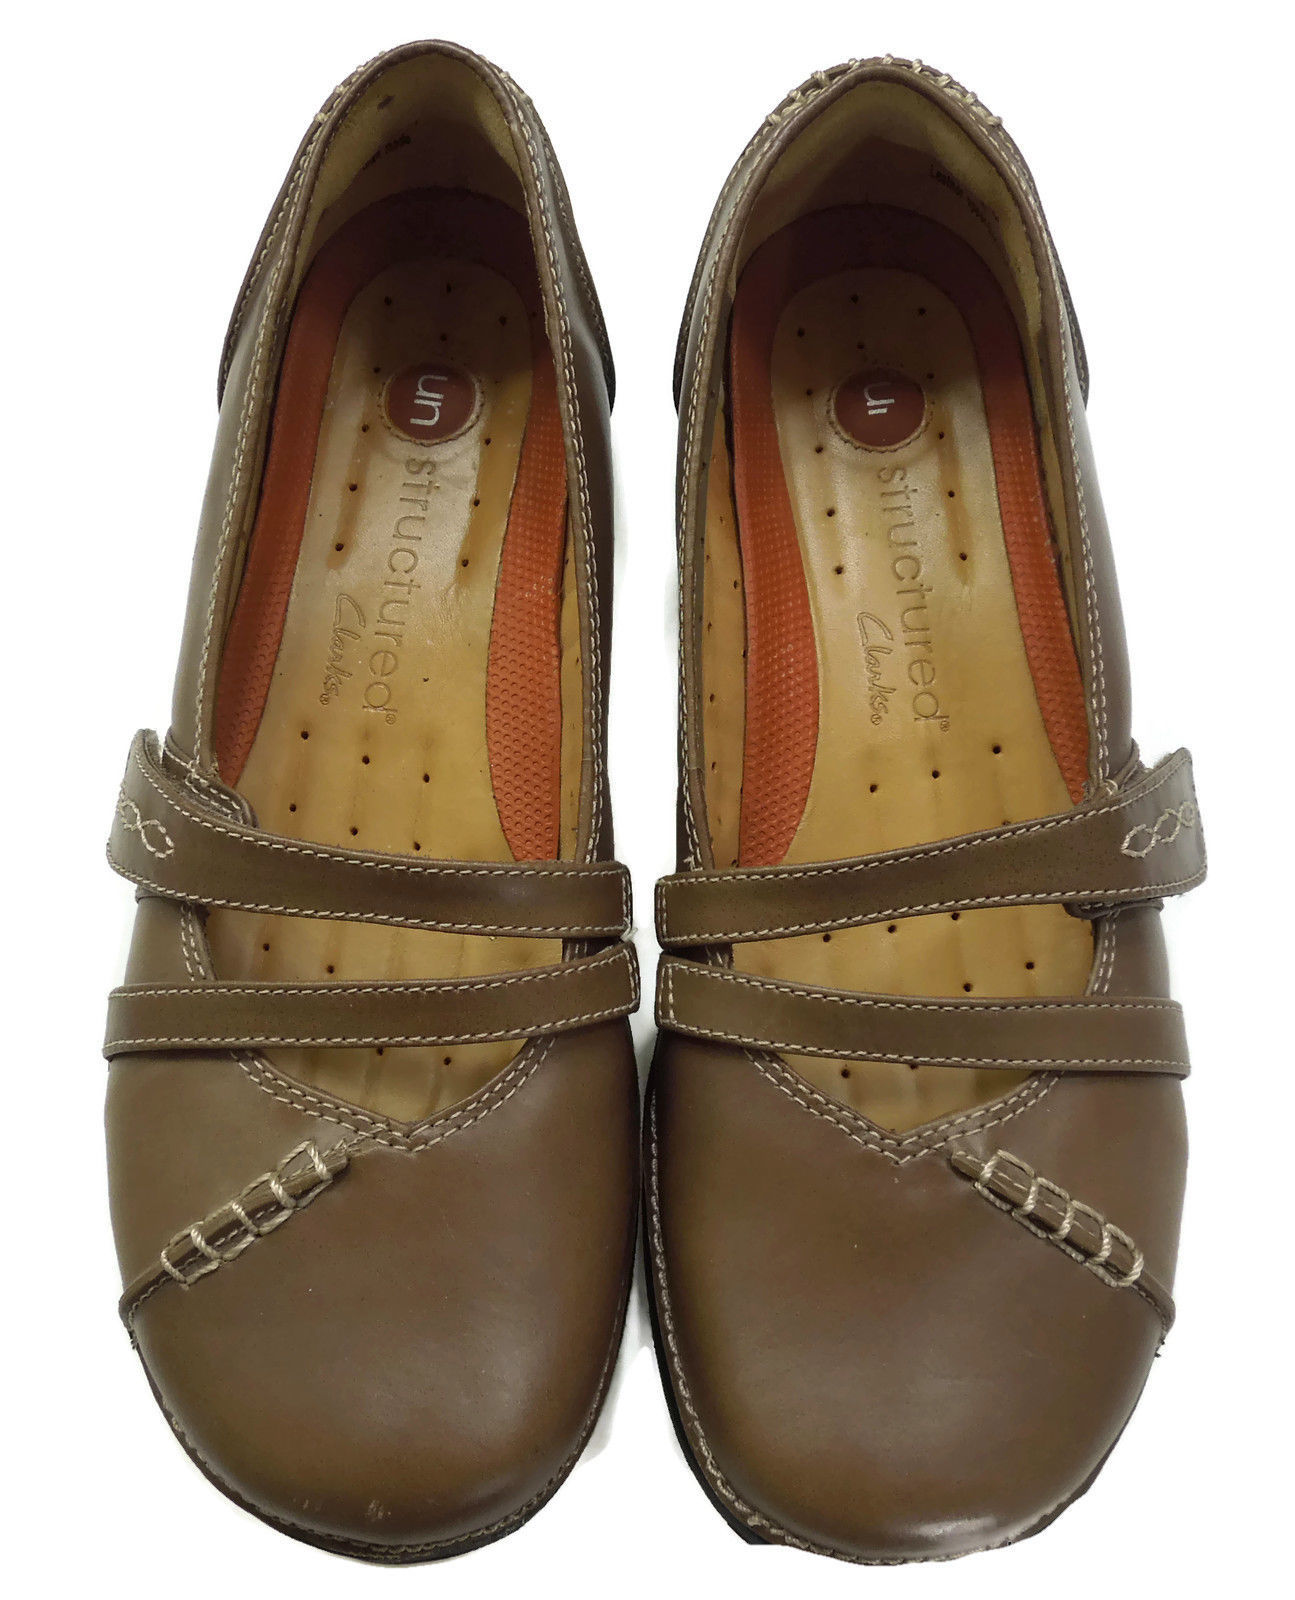 CLARKS Women's Unstructured Camel Tan Leather Mary Jane Loafer Shoes Sz 6M $120